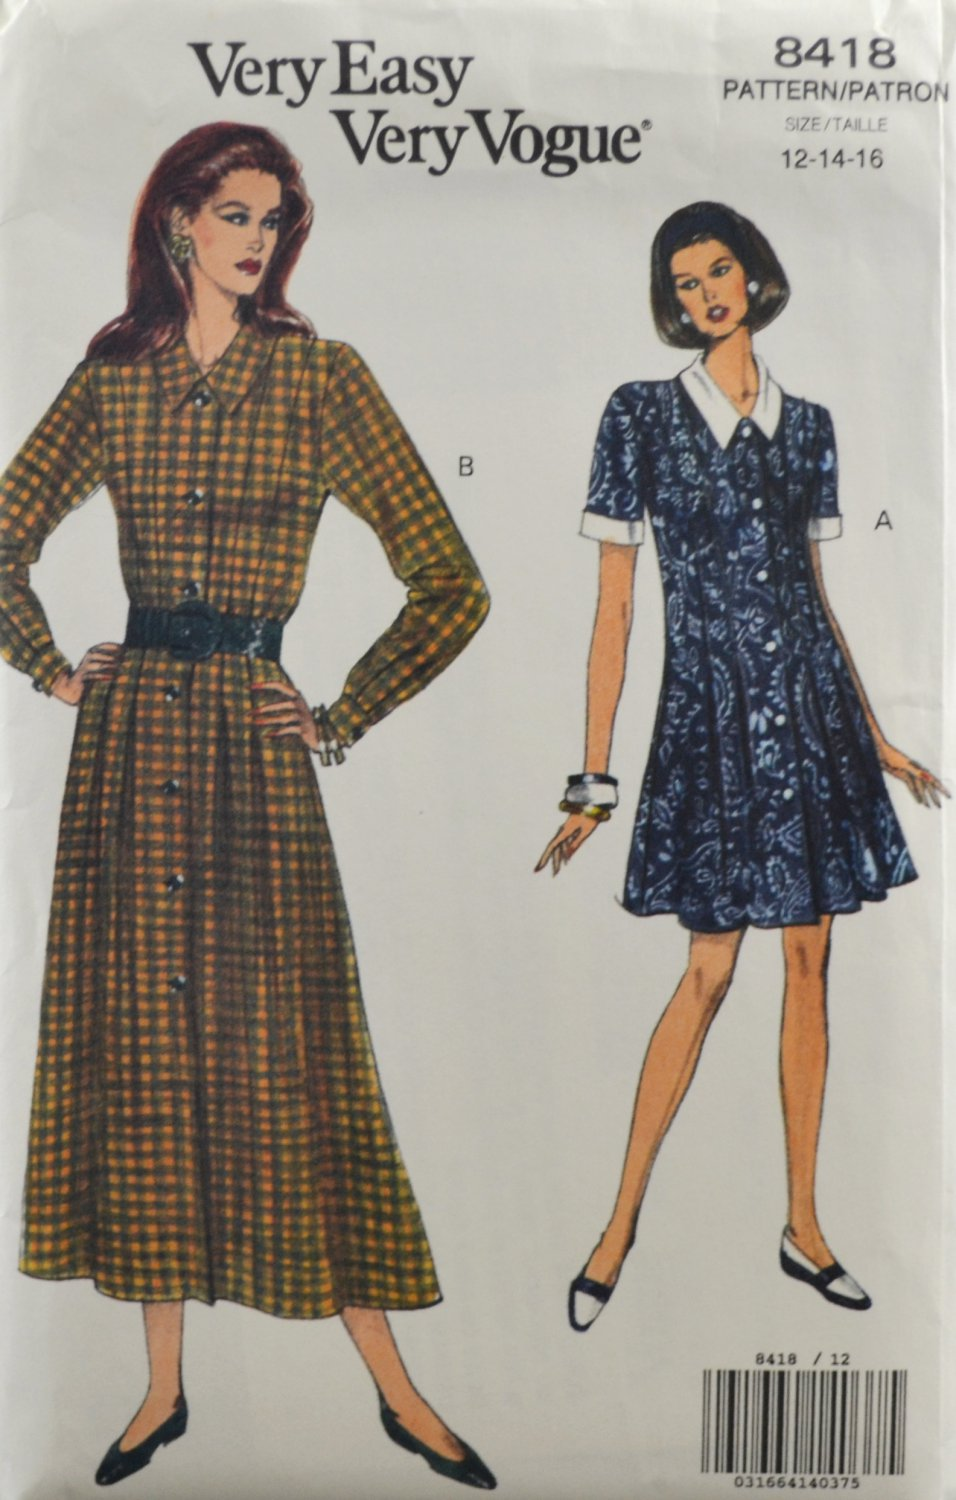 Vogue 8418 Sewing Pattern Misses' Dress w/ Front Buttons Size 12-14-16